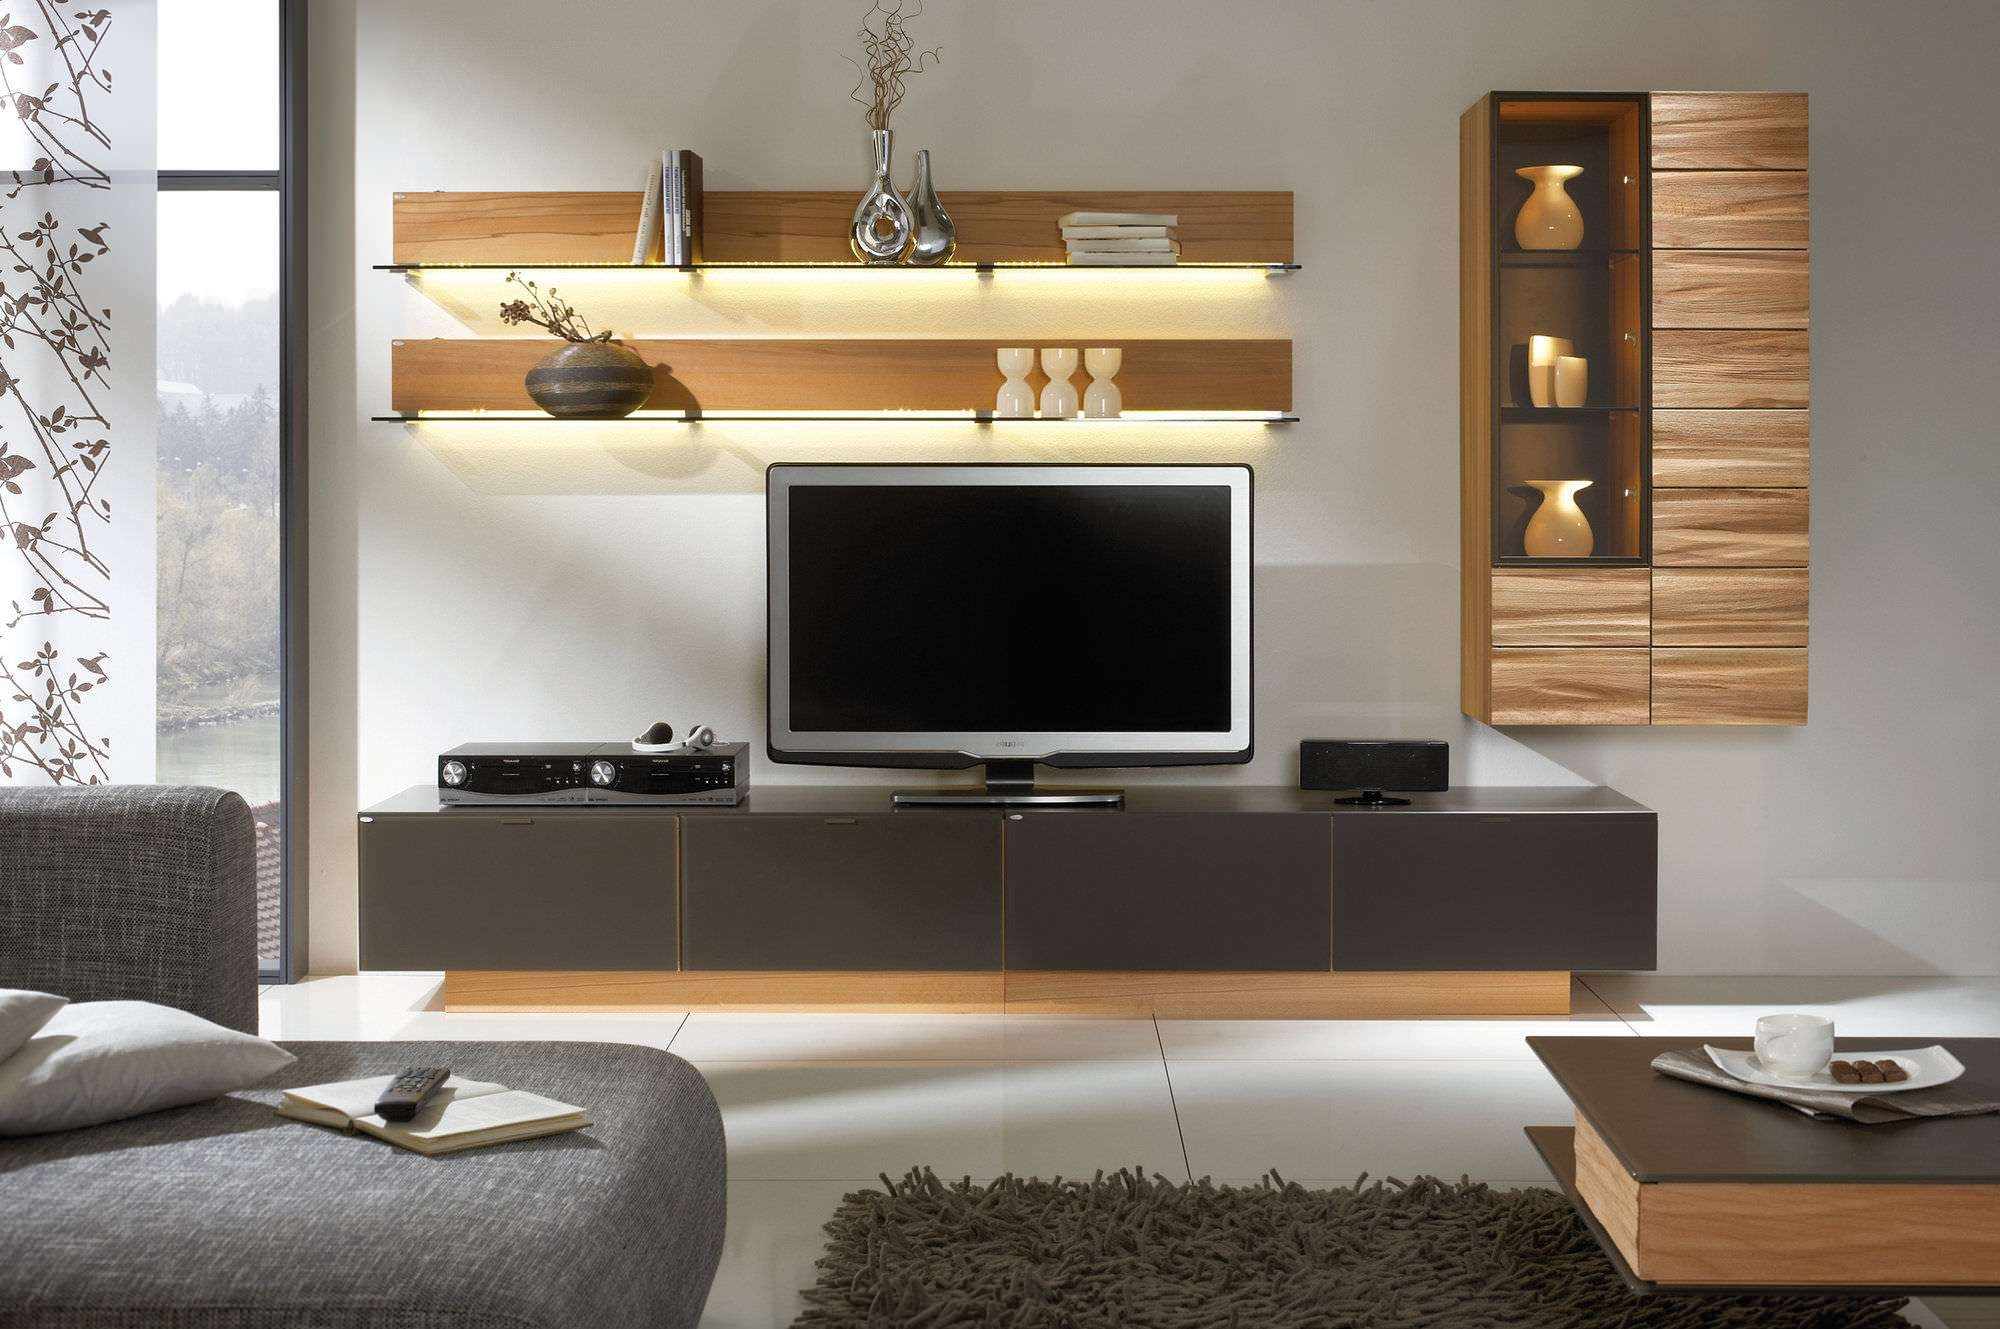 Bedroom Modern Tv Units Unit Design Contemporary In Cabinets